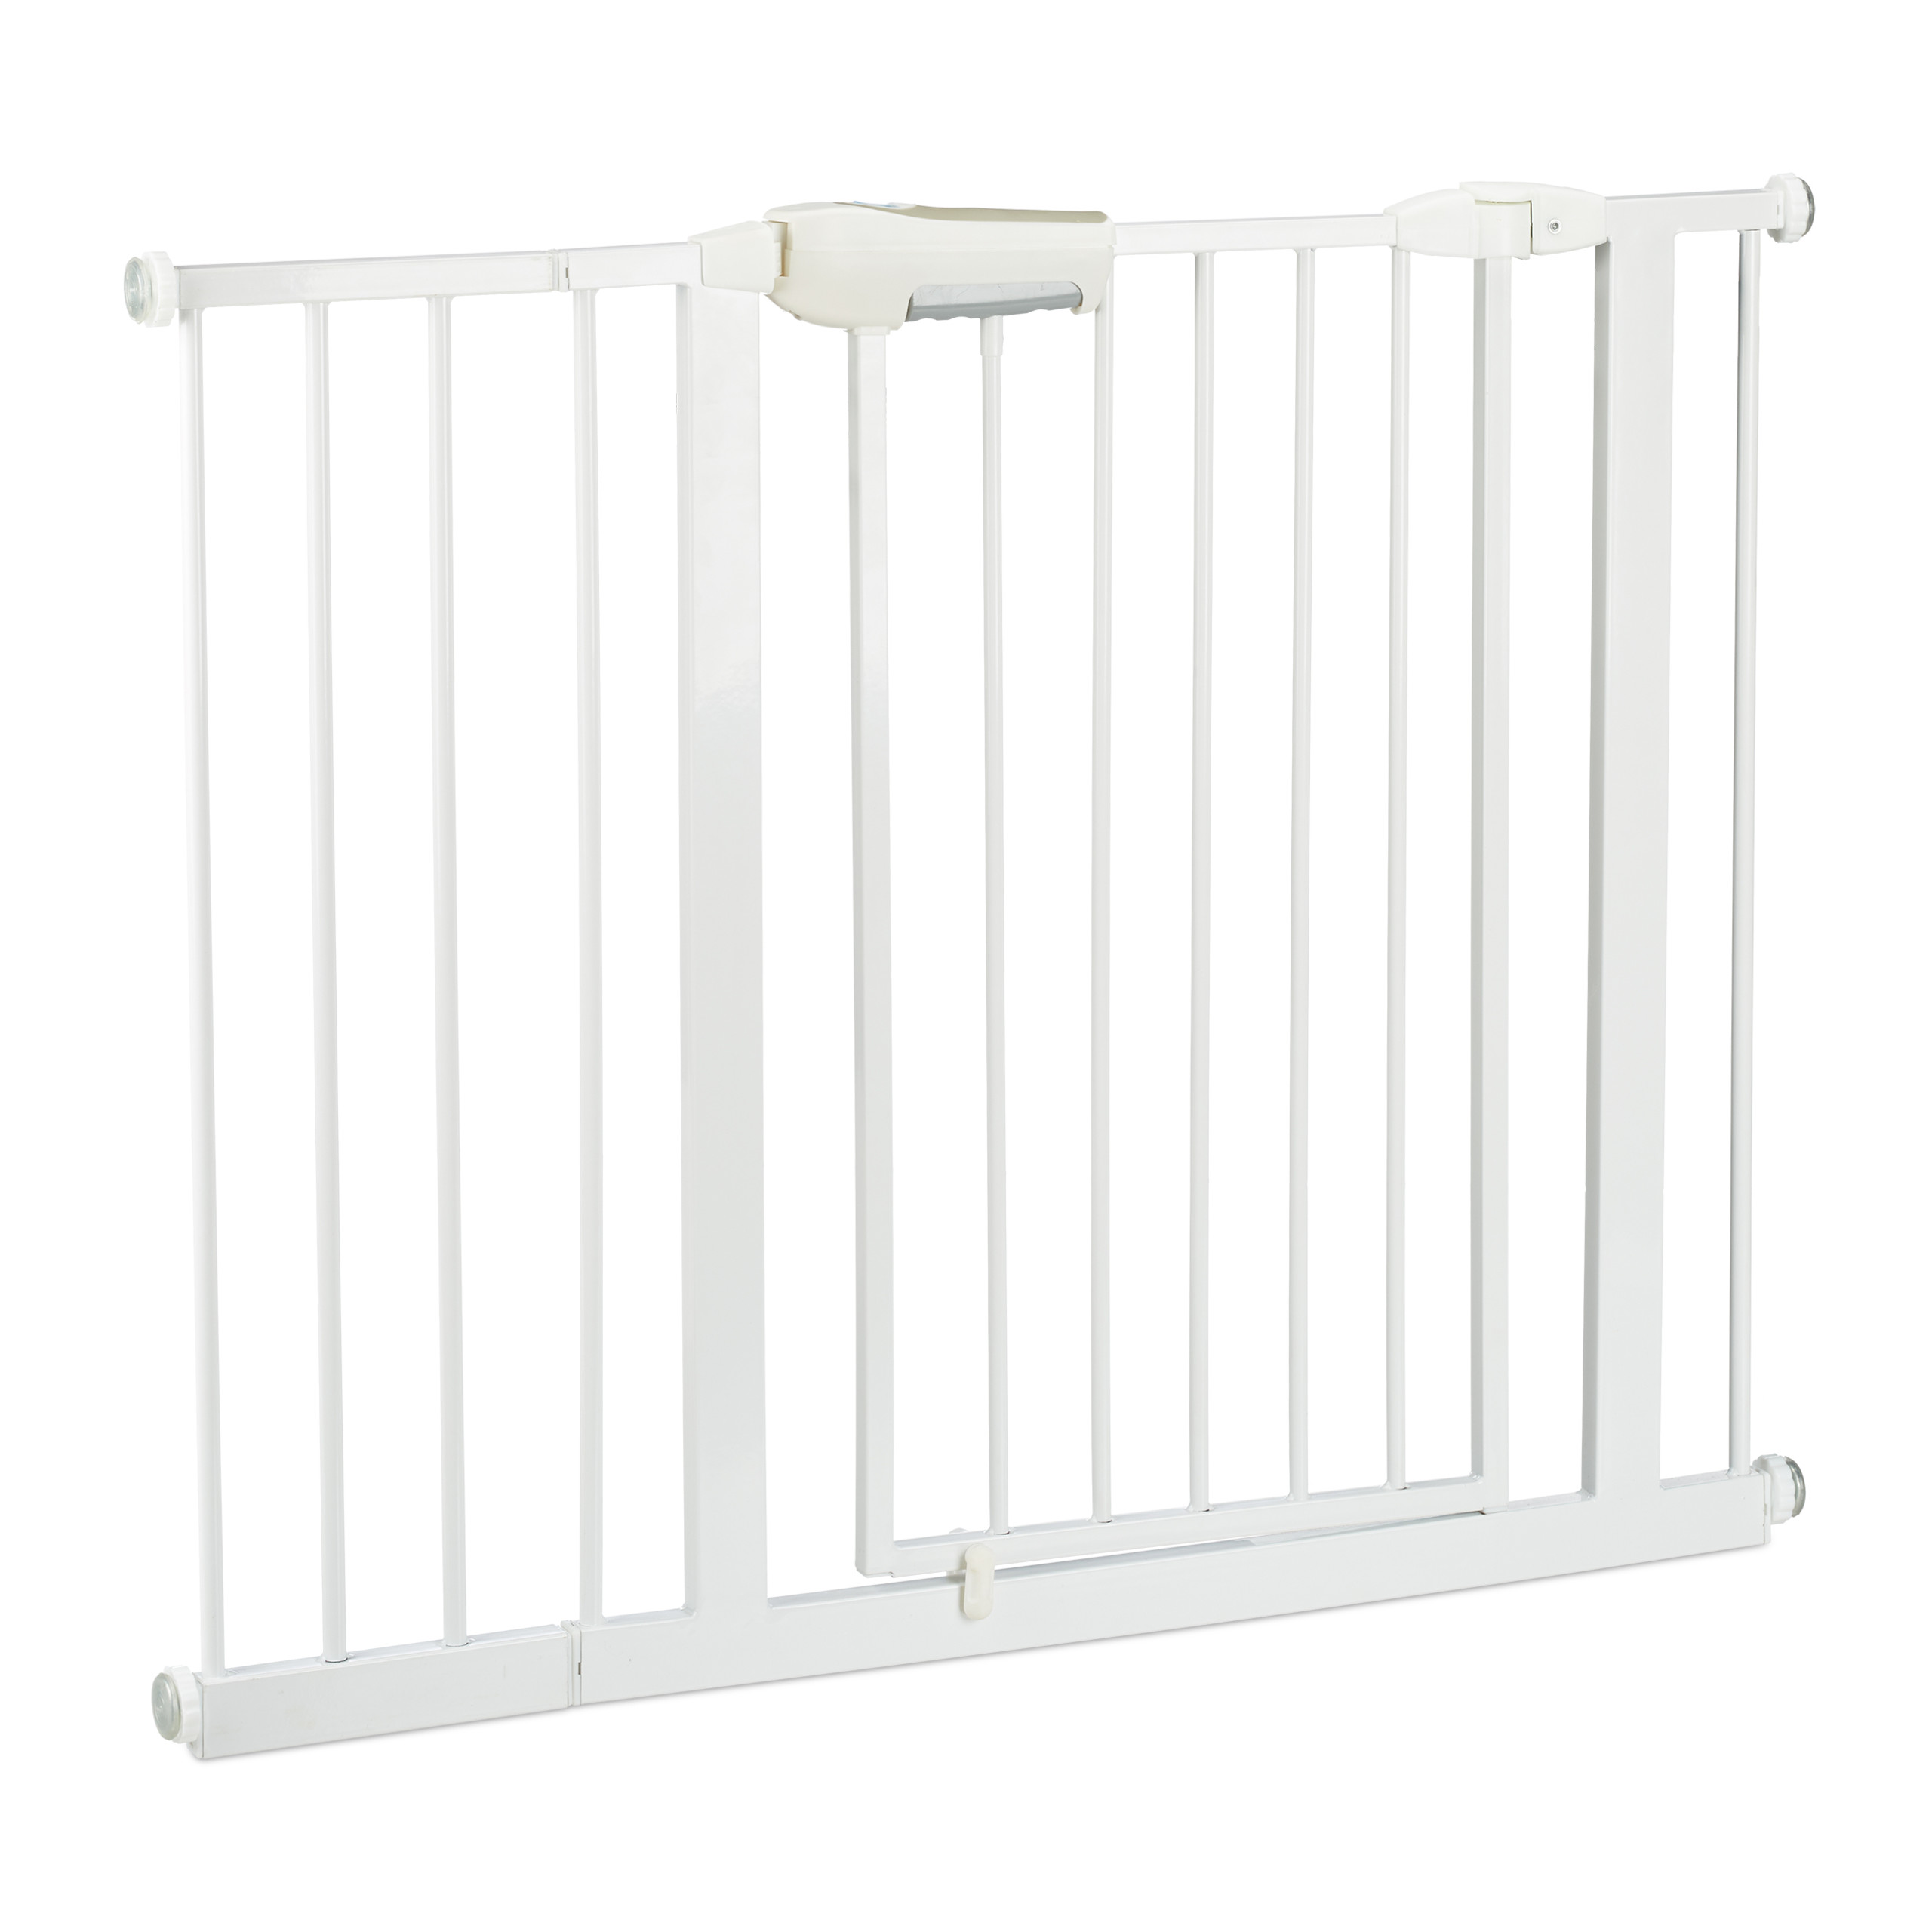 Pressure-Fit-Baby-Safety-Gate-Extension-Security-Barrier-for-Stairs-and-Doors thumbnail 8